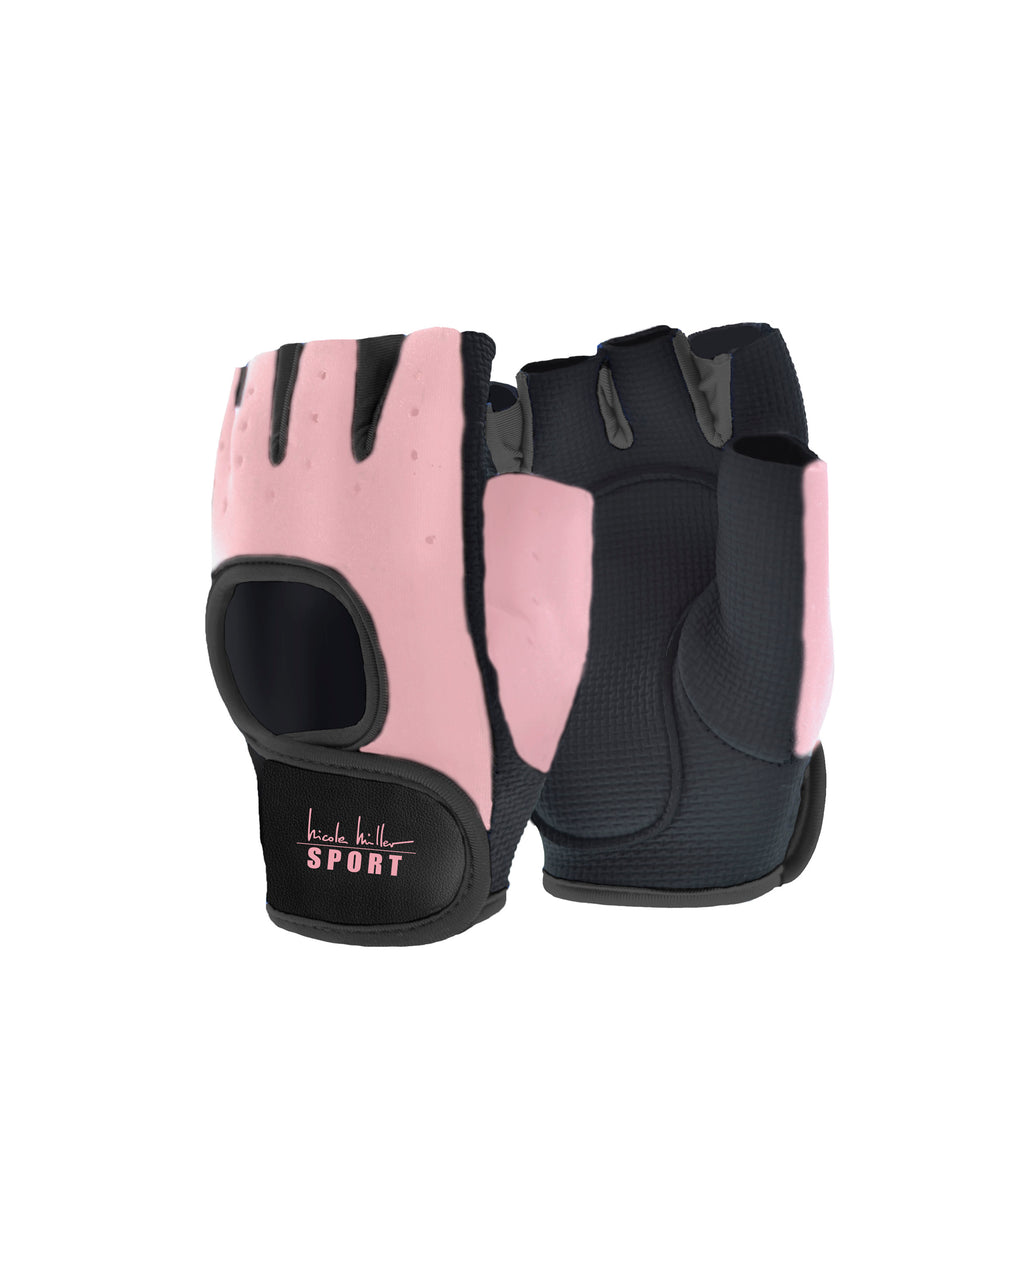 NMGSM - WORKOUT GLOVES S/M - accessories - activewear - Get a supported grip on your workout with our Universal Workout Gloves.Prevent calluses and blisters. Adjustable wrist closure. Size S/M.